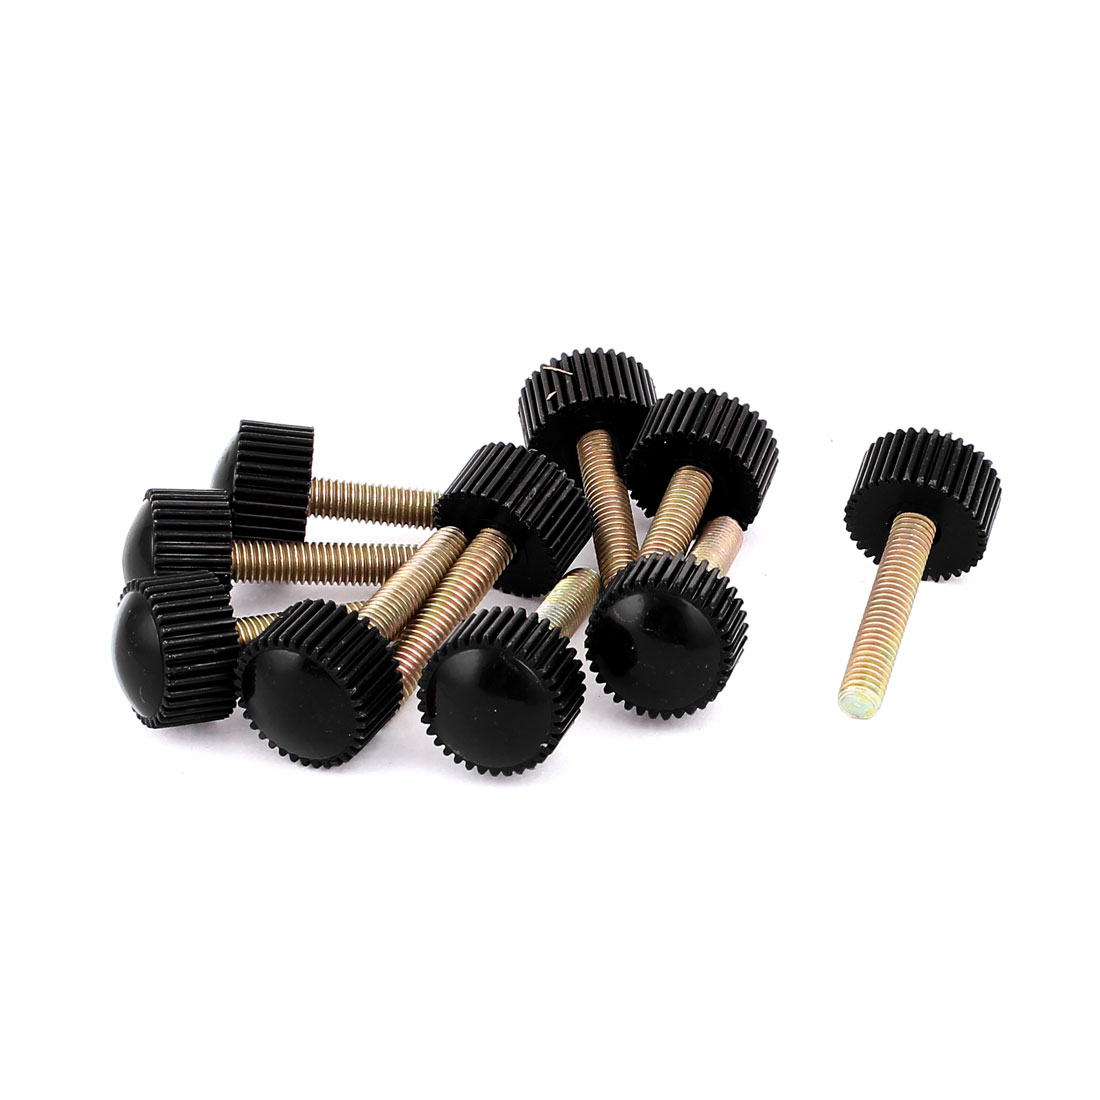 M5 x 25mm Round Head Screw On Straight Knurled Clamping Knob Grips Black 10pcs